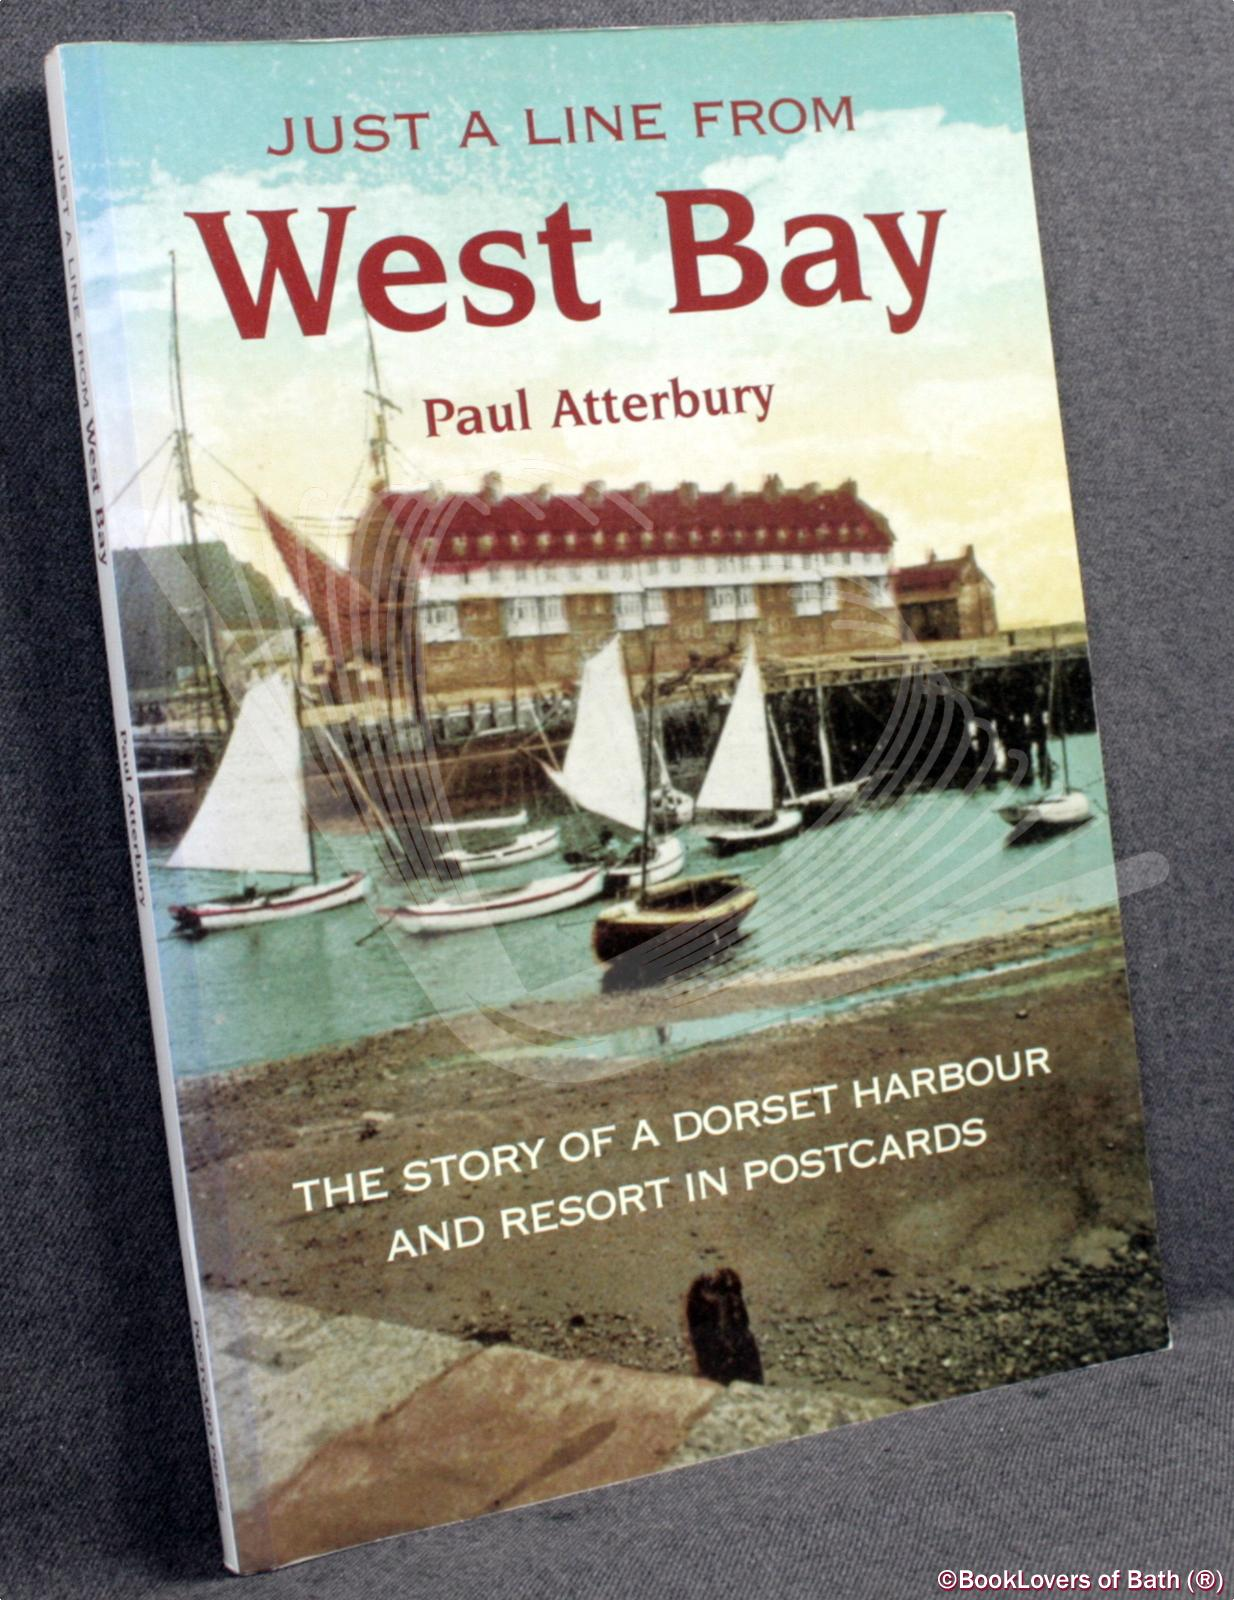 Just a Line from West Bay: The Story of a Dorset Harbour and Resort in Postcards - Paul Atterbury